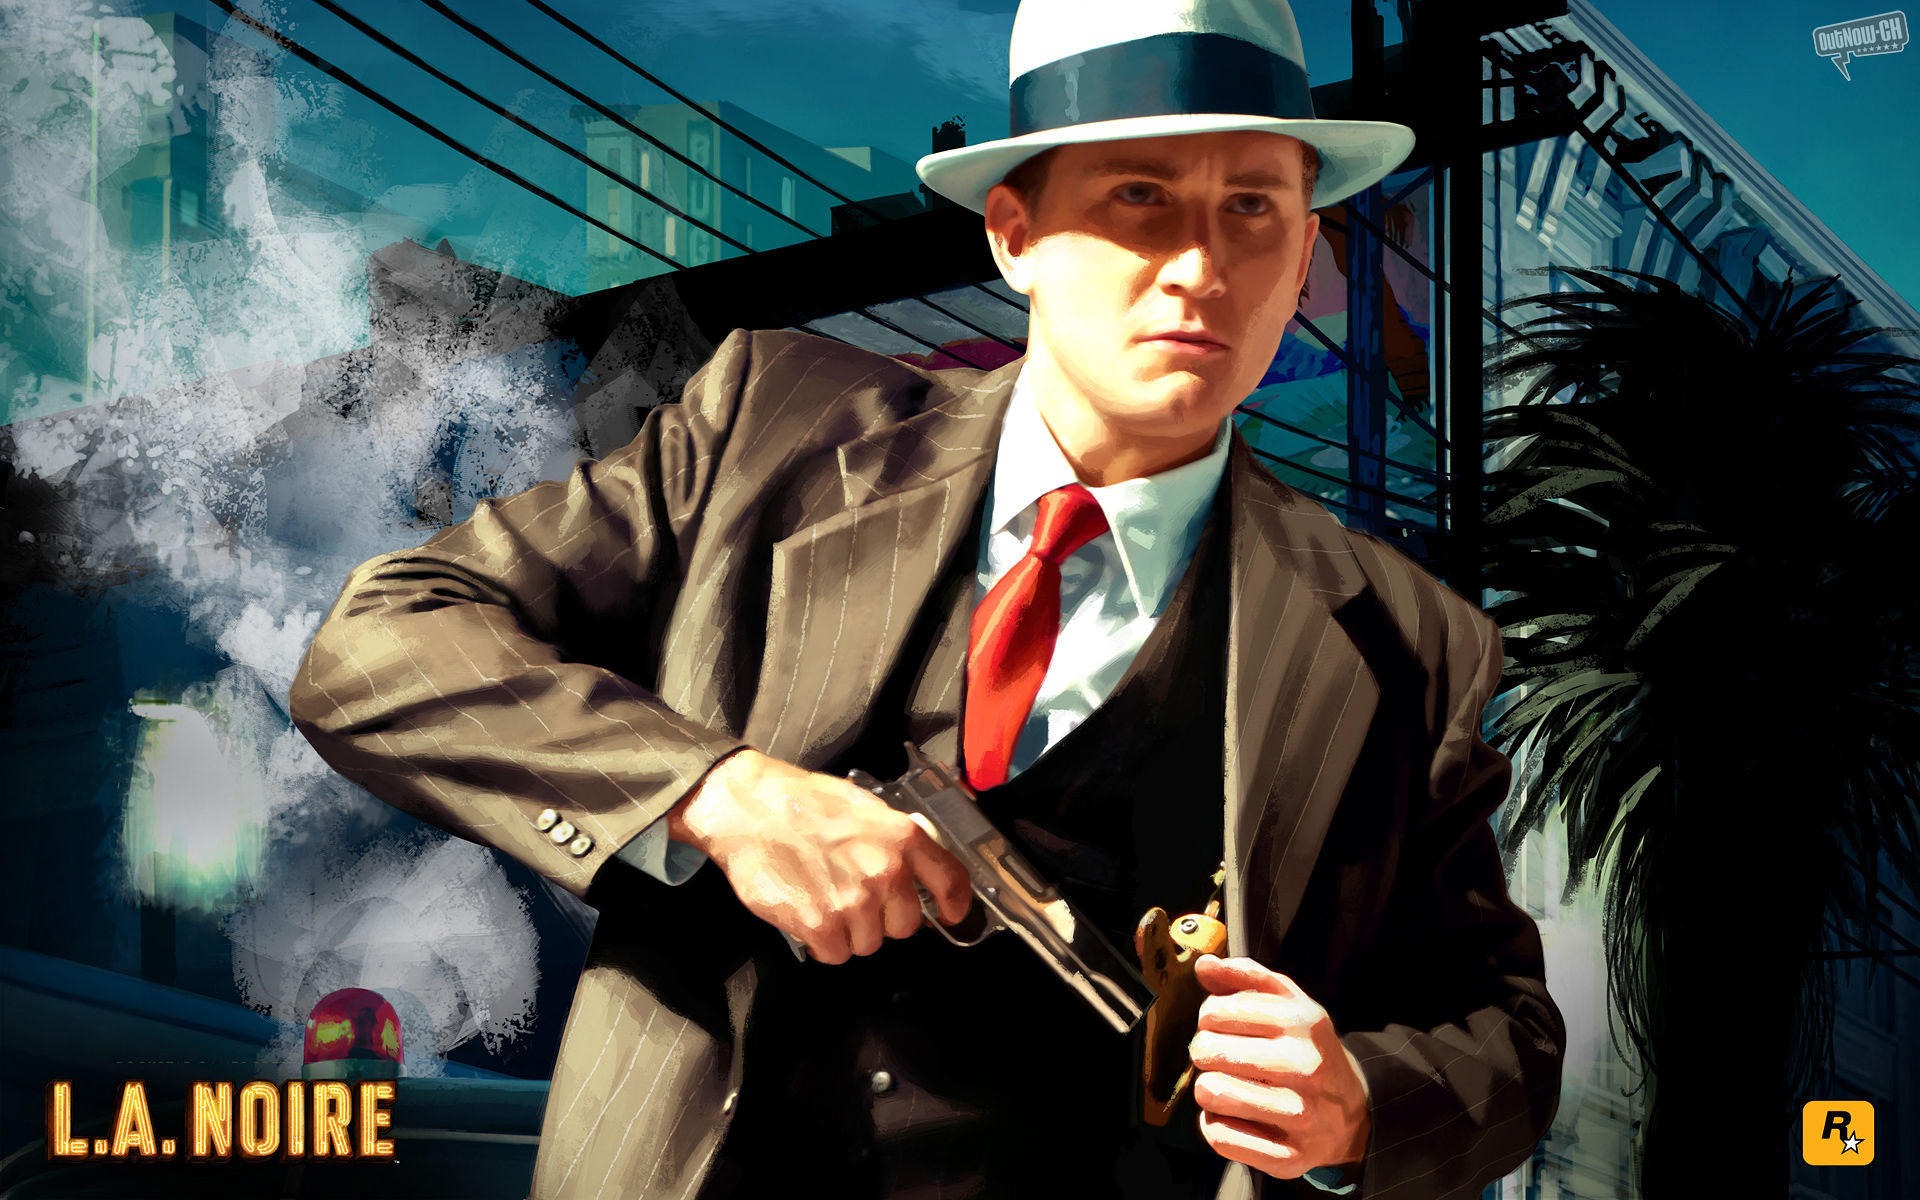 L.A noire download